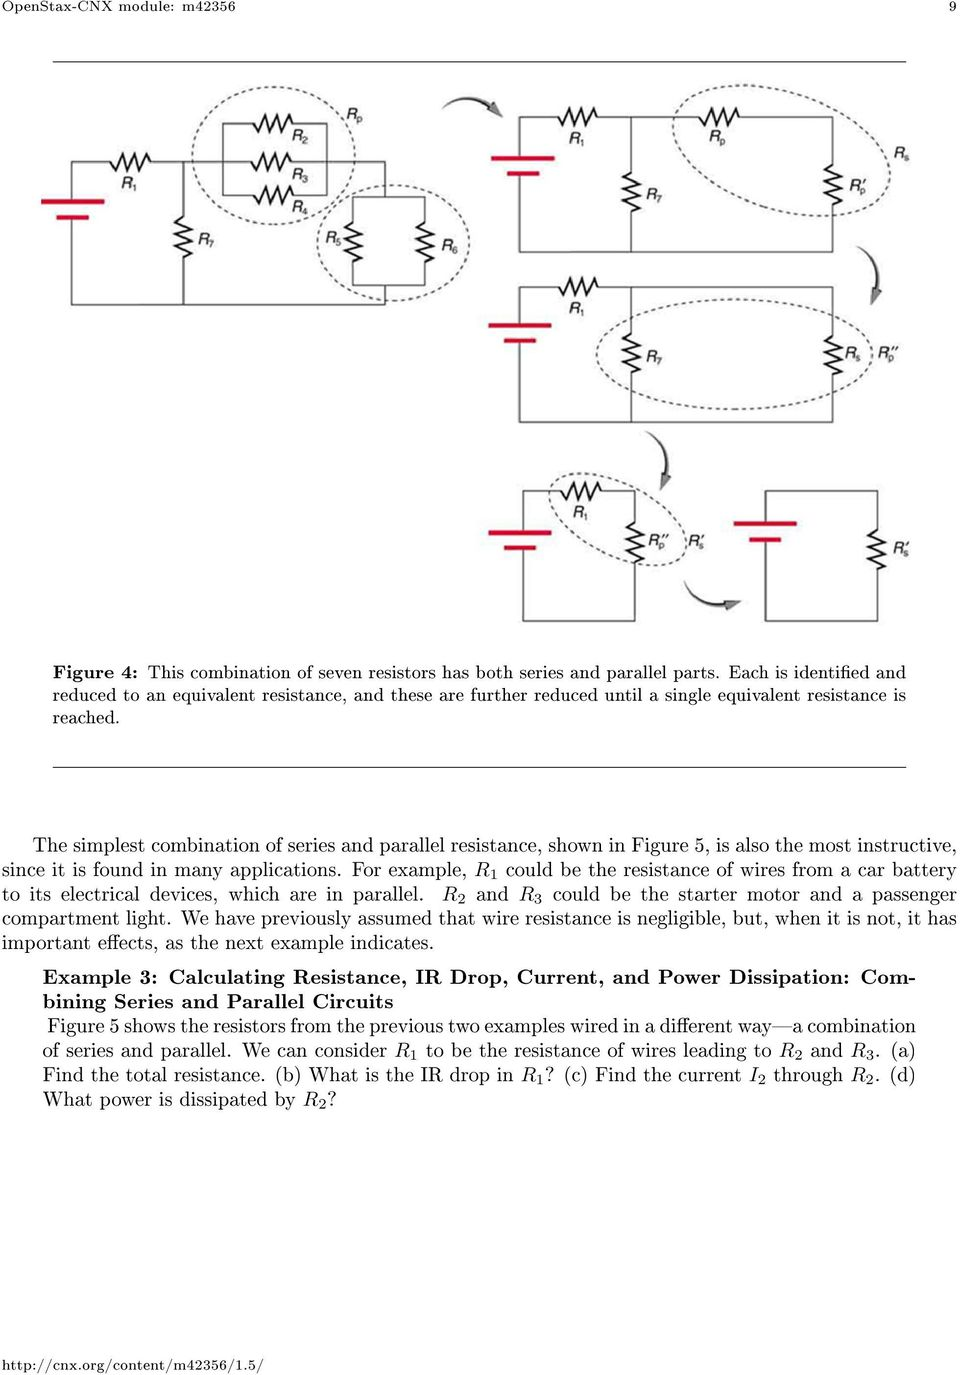 Resistors In Series And Parallel Pdf Wiring Diagram The Simplest Combination Of Resistance Shown Figure 5 Is Also